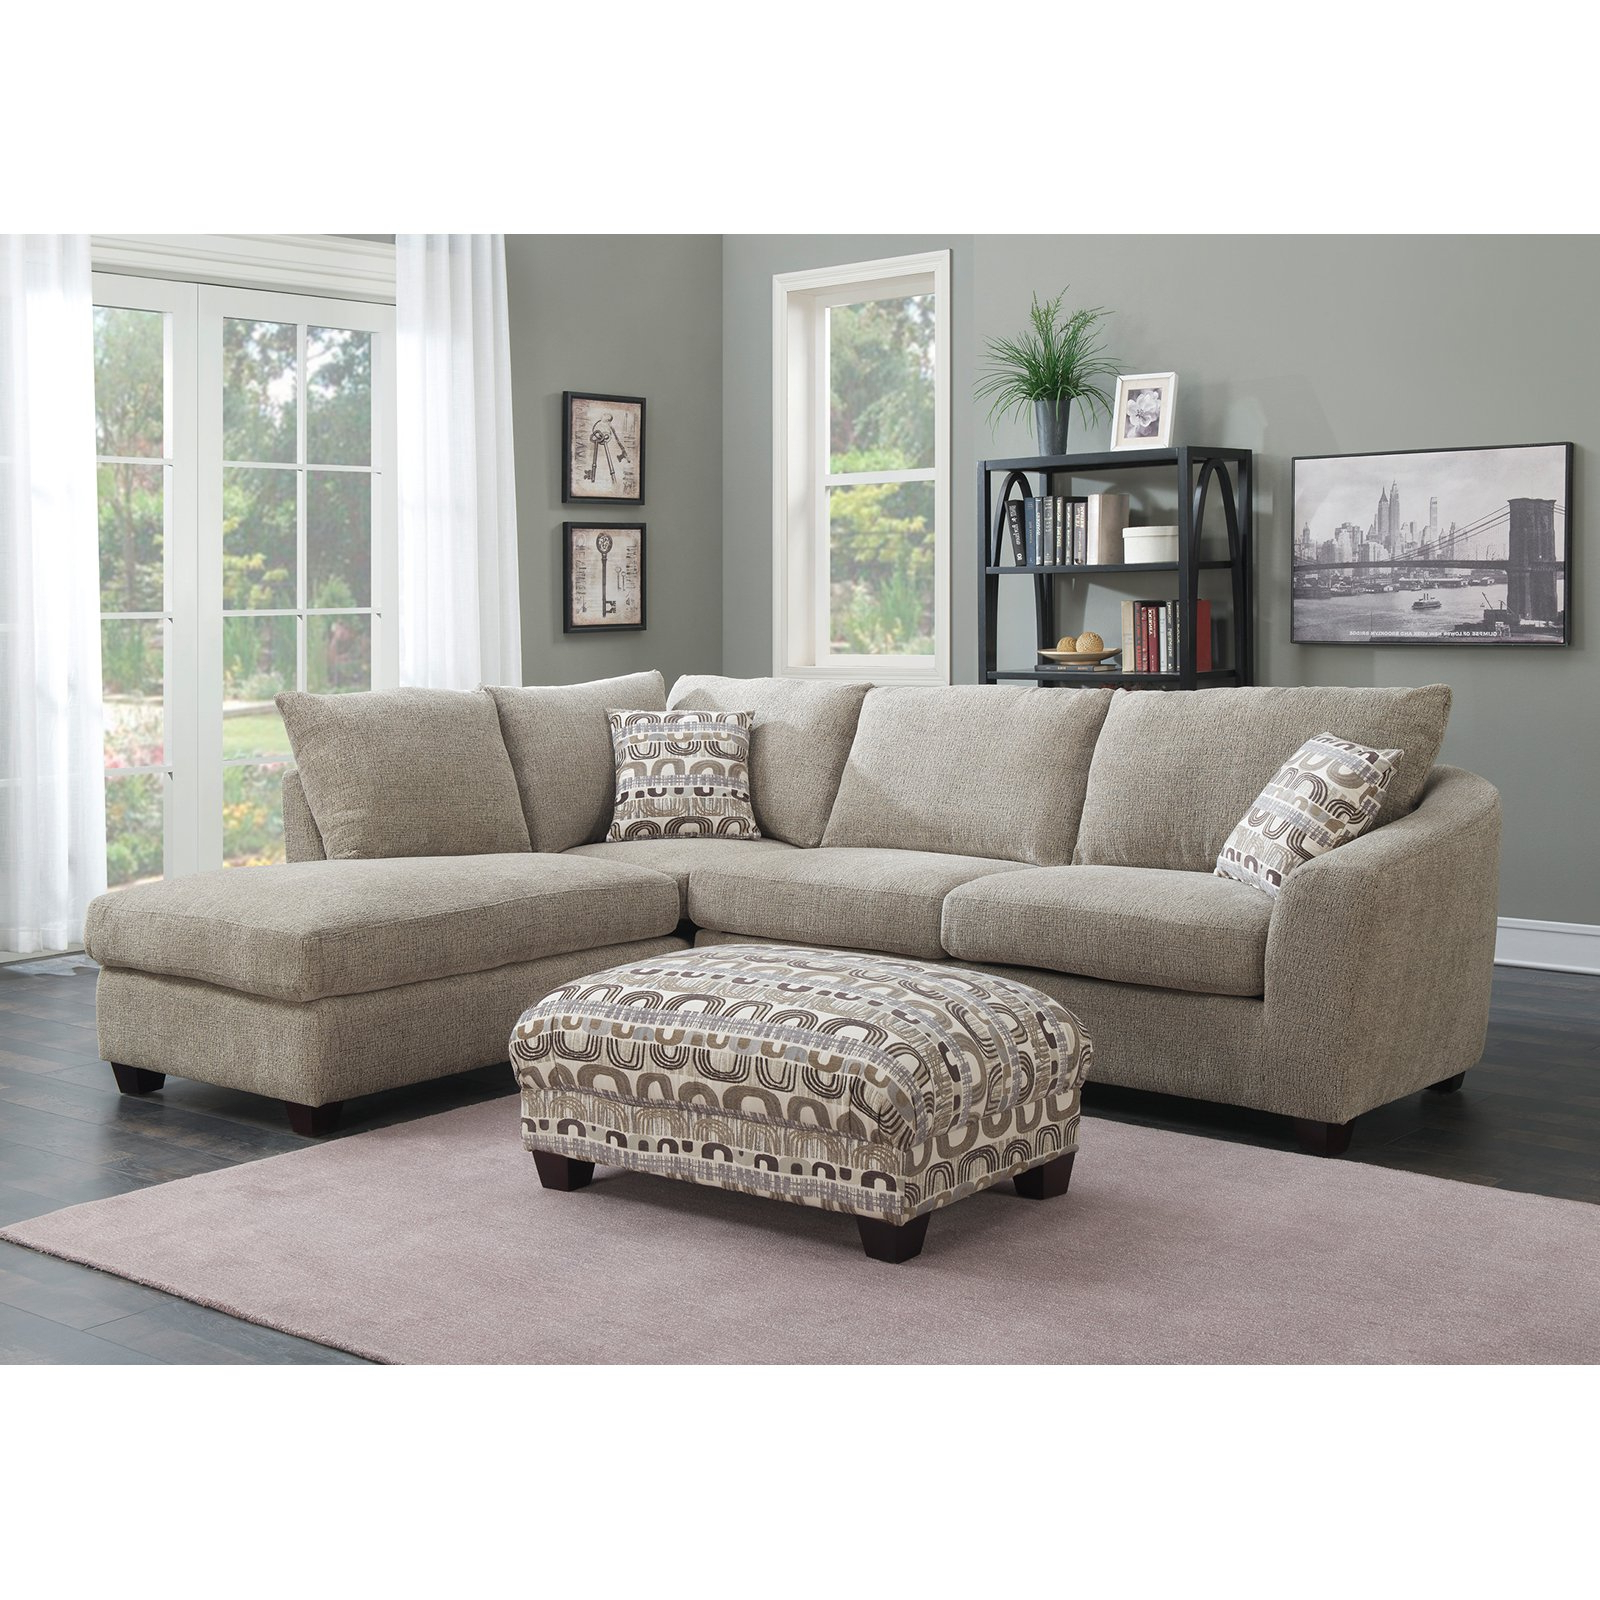 Arrowmask 2 Piece Sectionals With Laf Chaise Inside Trendy 2 Piece Sectional With Chaise – Tidex (View 7 of 20)